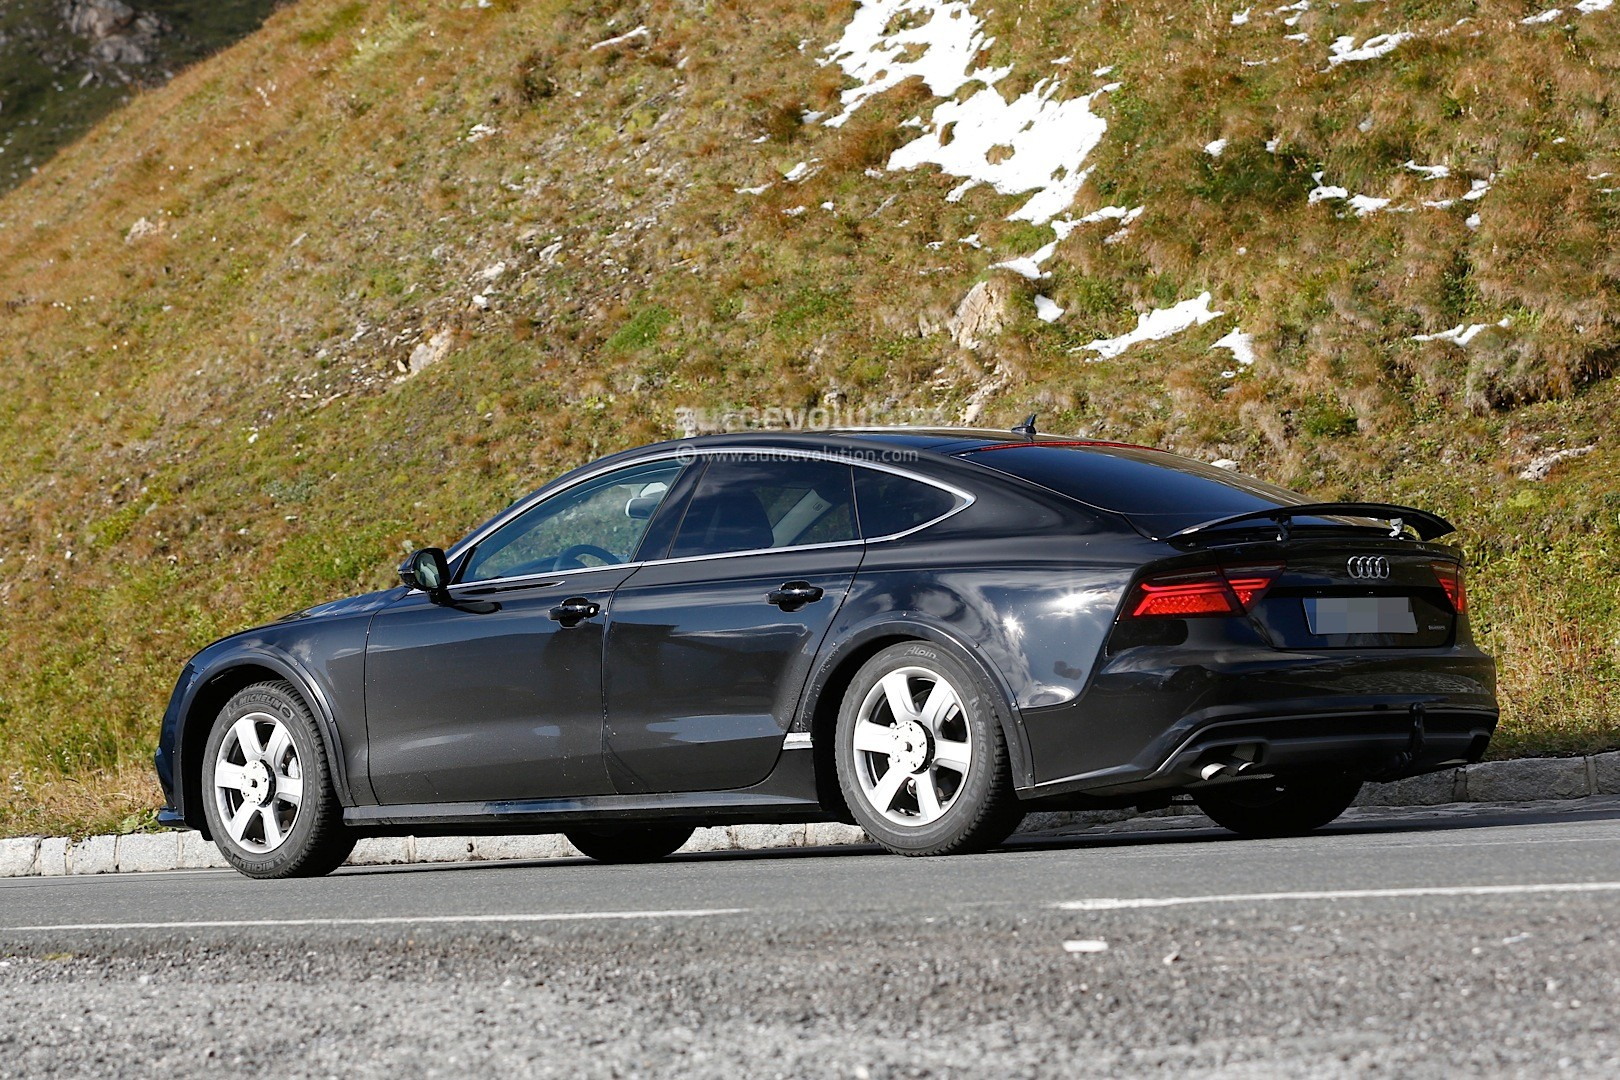 Spyshots: 2018 Audi A7 Chassis Testing Mule Seen for the First Time - autoevolution